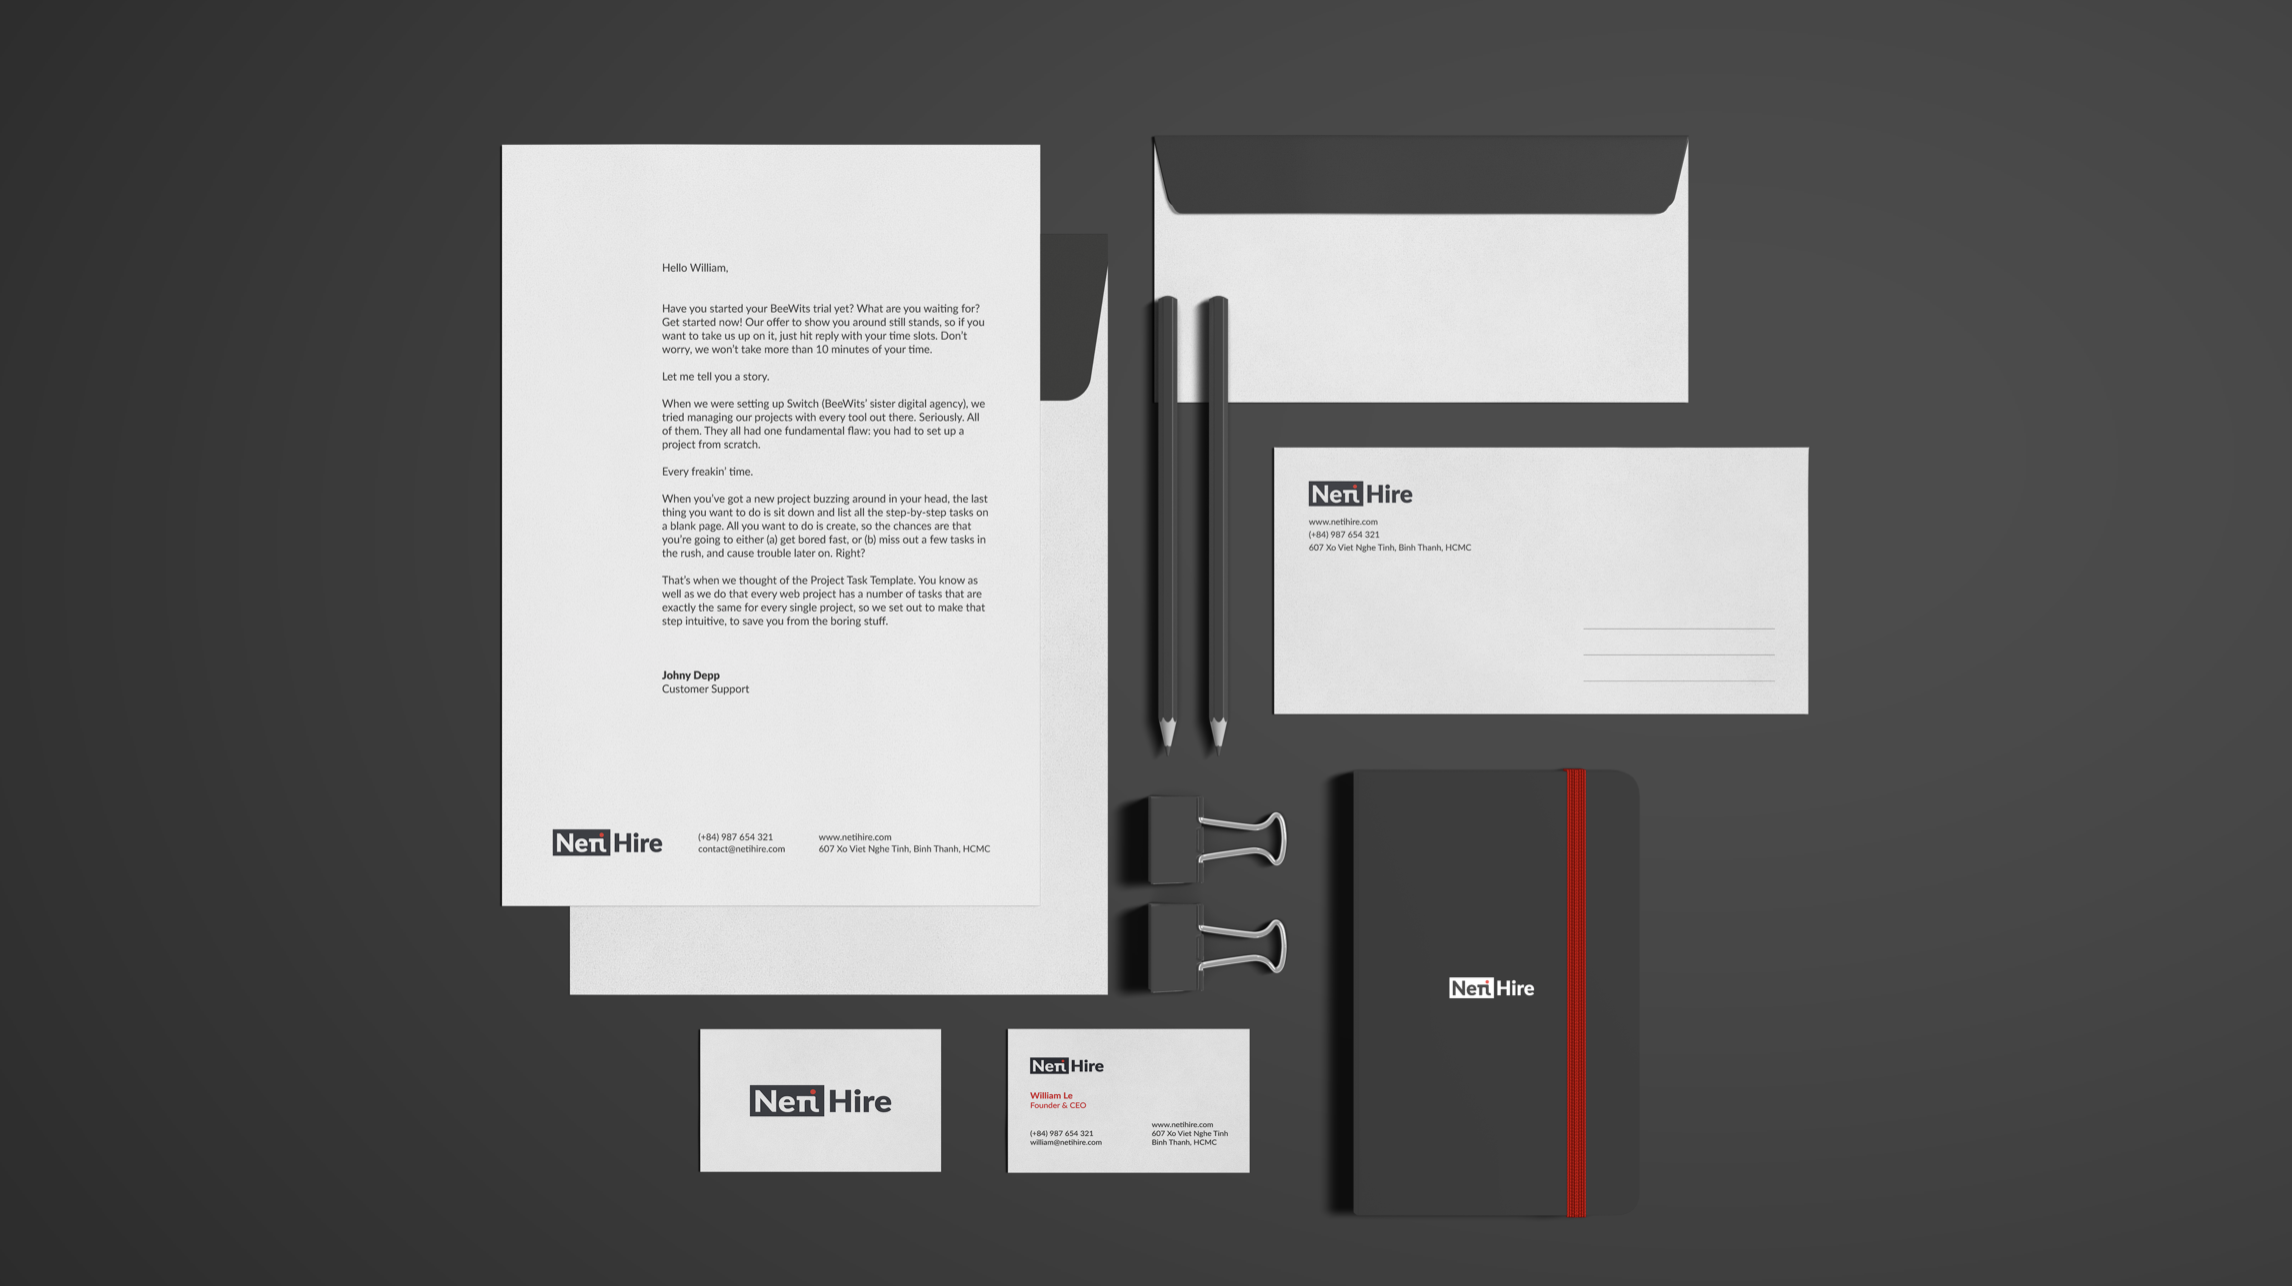 Stationery for NetiHire